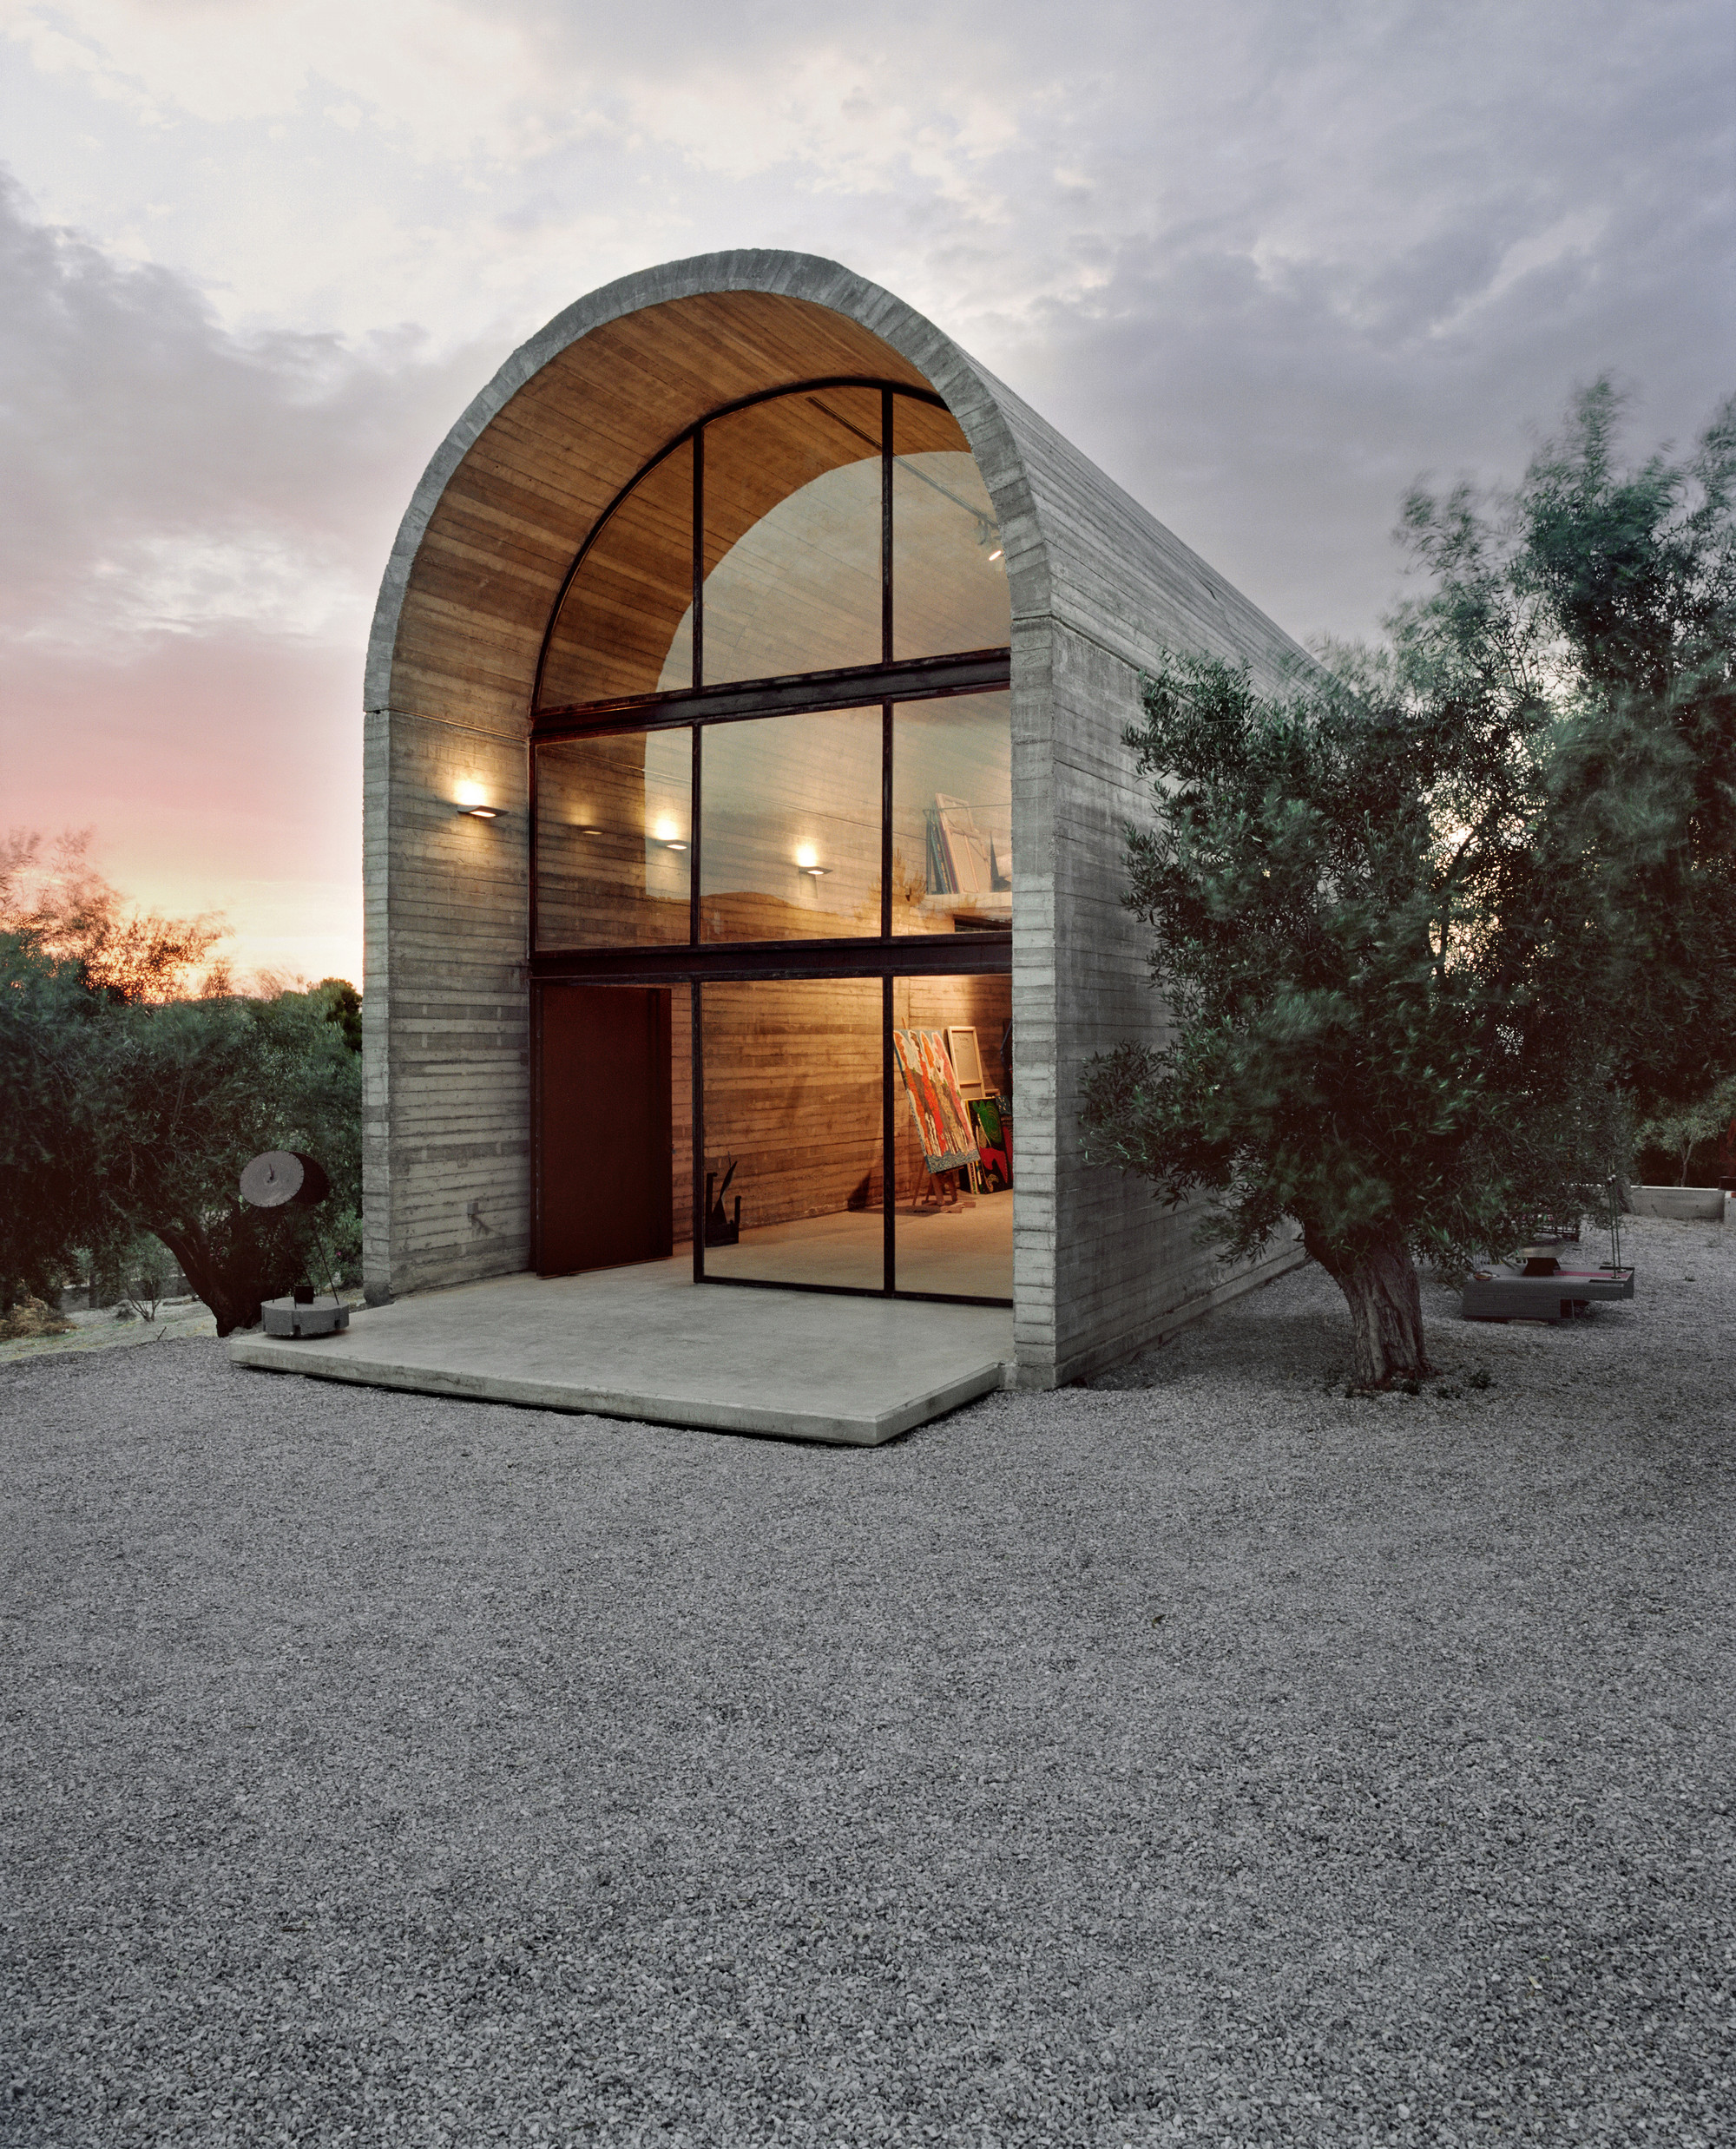 Art Warehouse in Greece / A31 Architecture